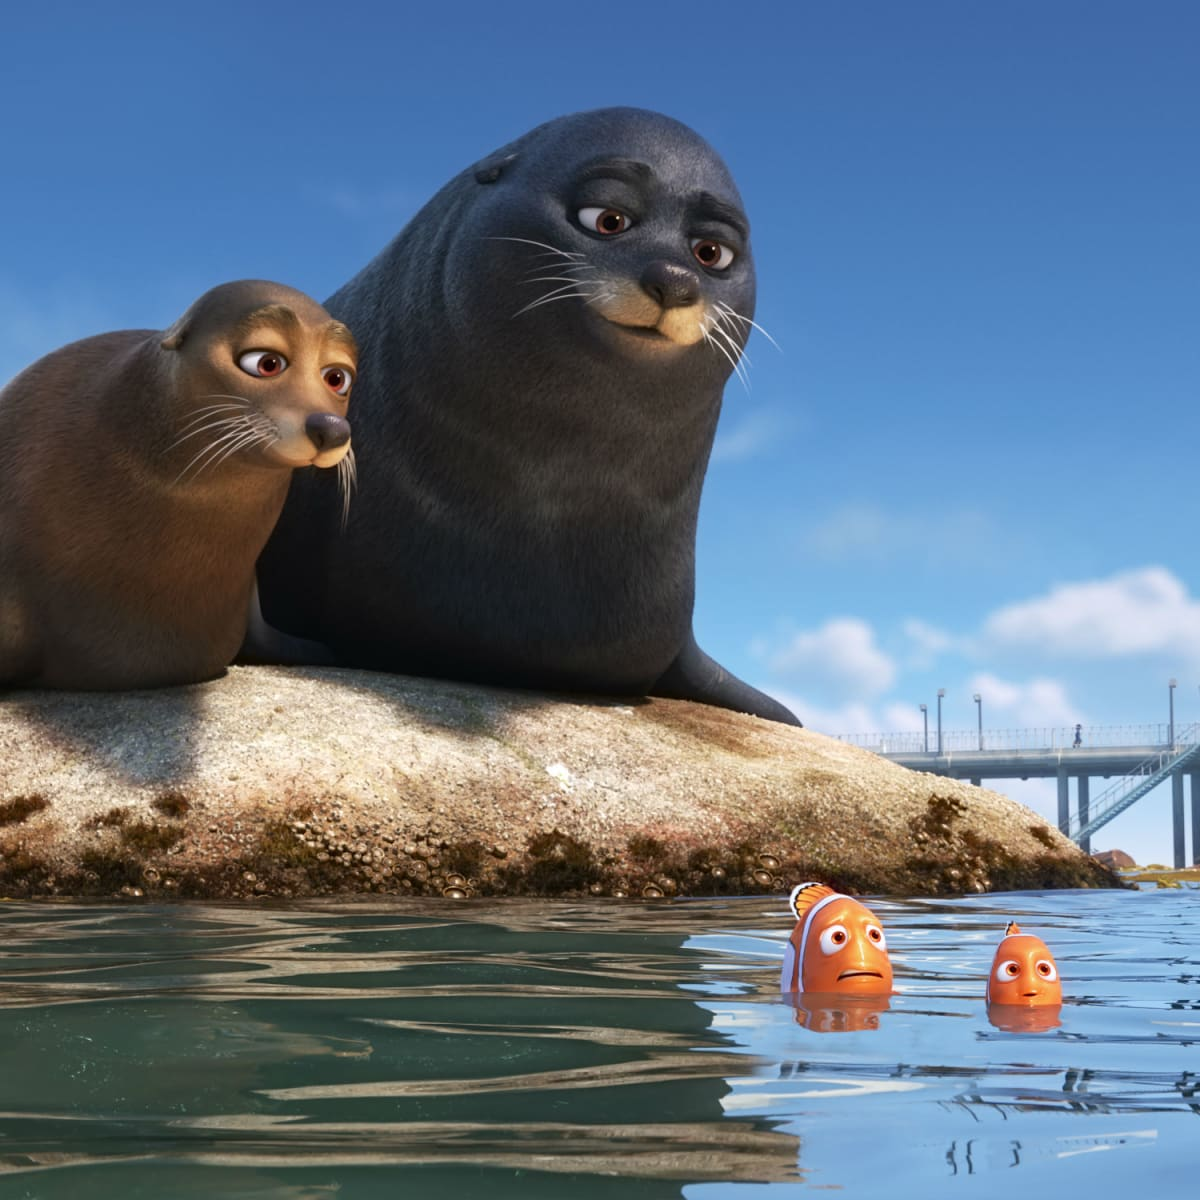 Rudder, Fluke, Marlin, and Nemo in Finding Dory